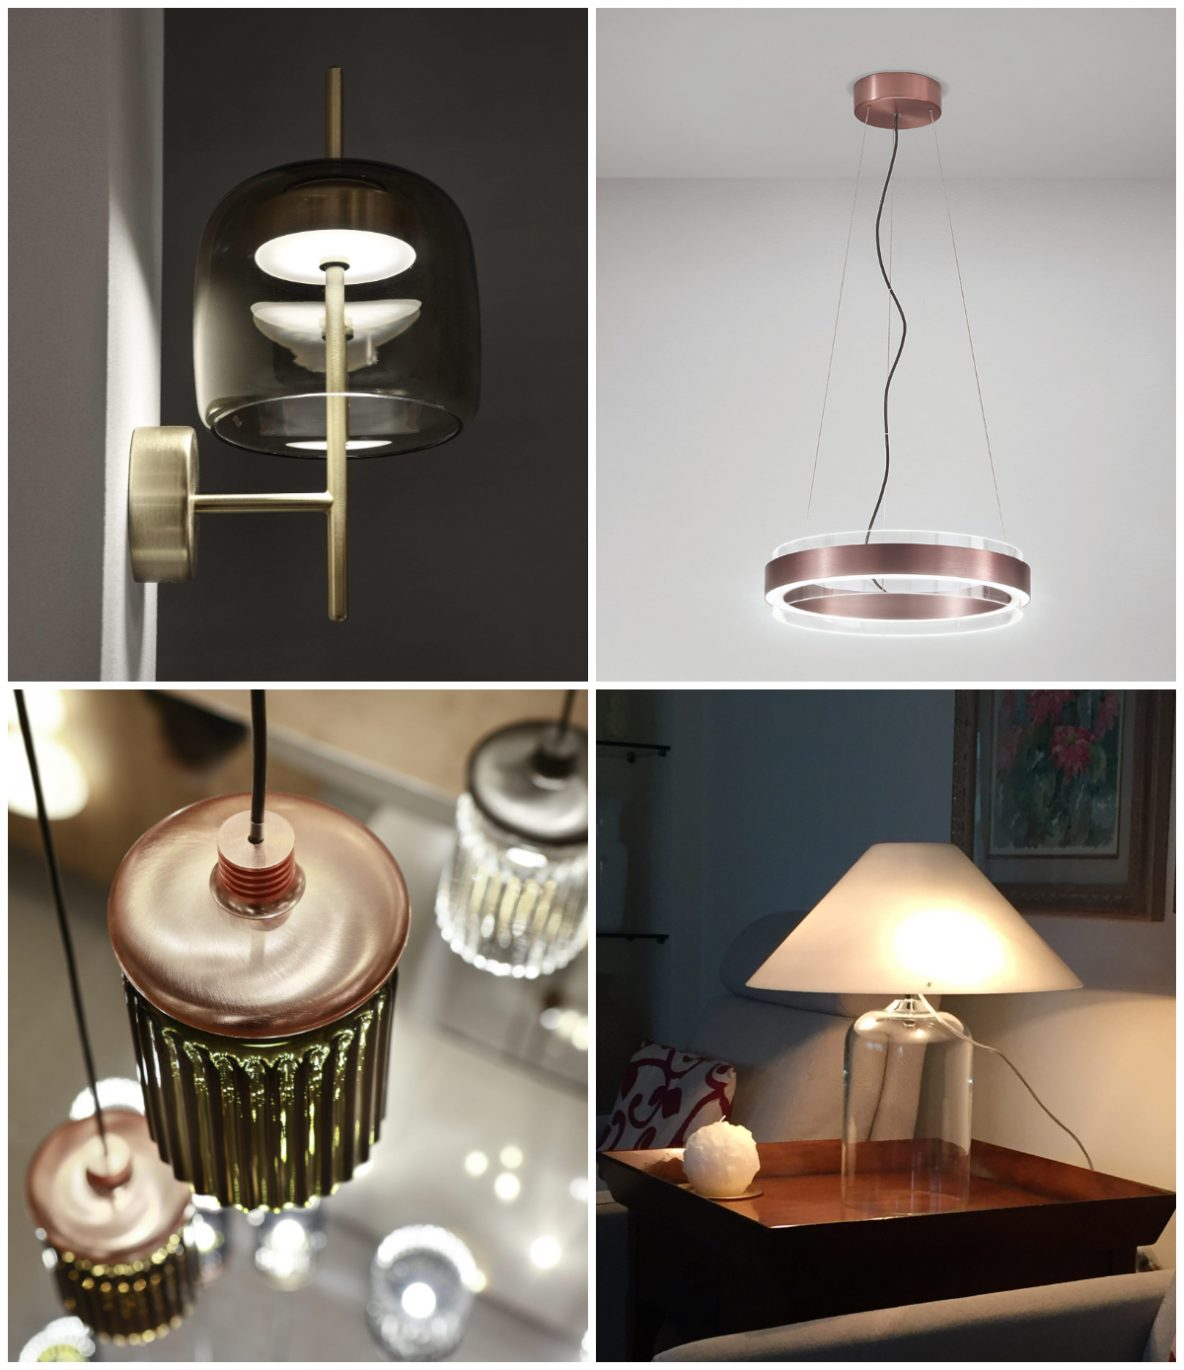 Vistosi Illuminazione - Lighting Design srl